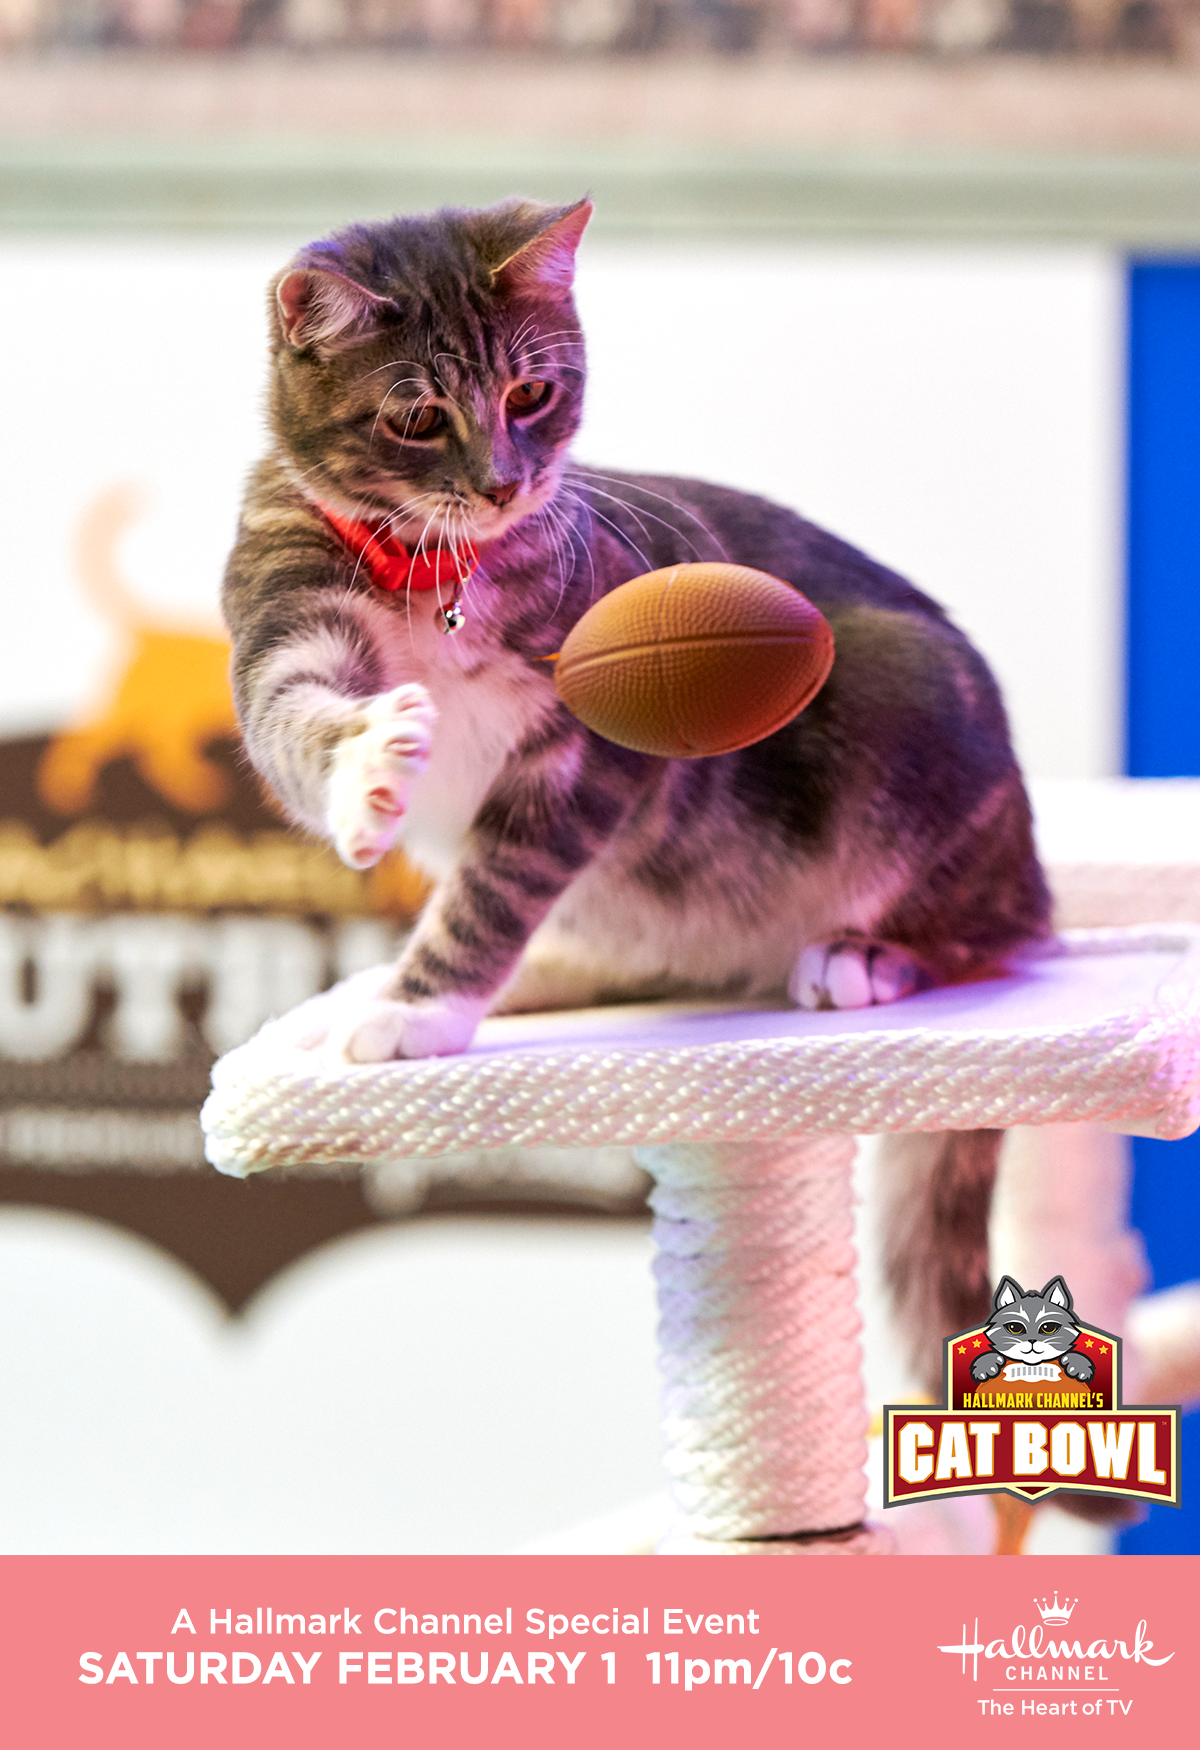 Hallmark Channel S Second Annual Cat Bowl Premieres On February 1 Kicking Off An Adoption Ever After Weekend Event Catbowl In 2020 Cat Bowls Cats Hallmark Channel